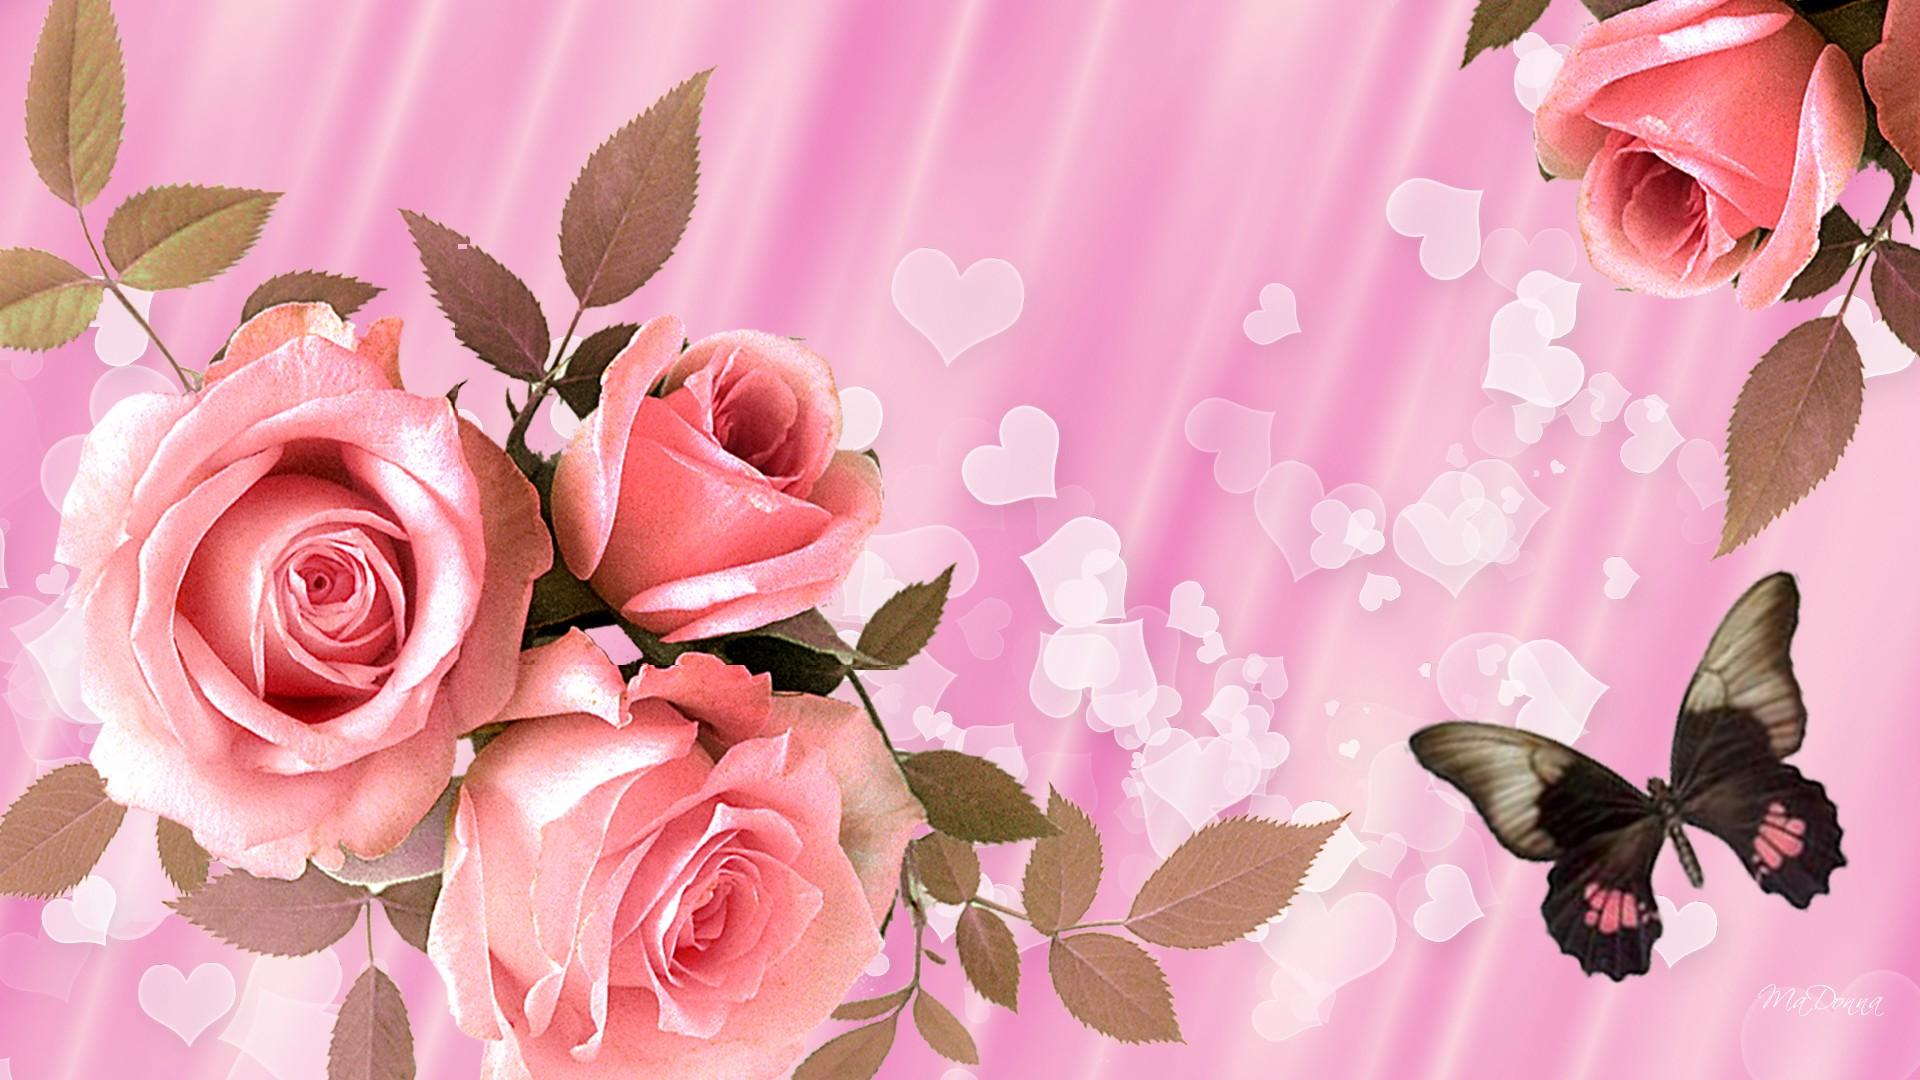 Free images of valentine flowers banner royalty free download Valentine Flowers Wallpaper HD Free Download   New HD Wallpapers ... banner royalty free download